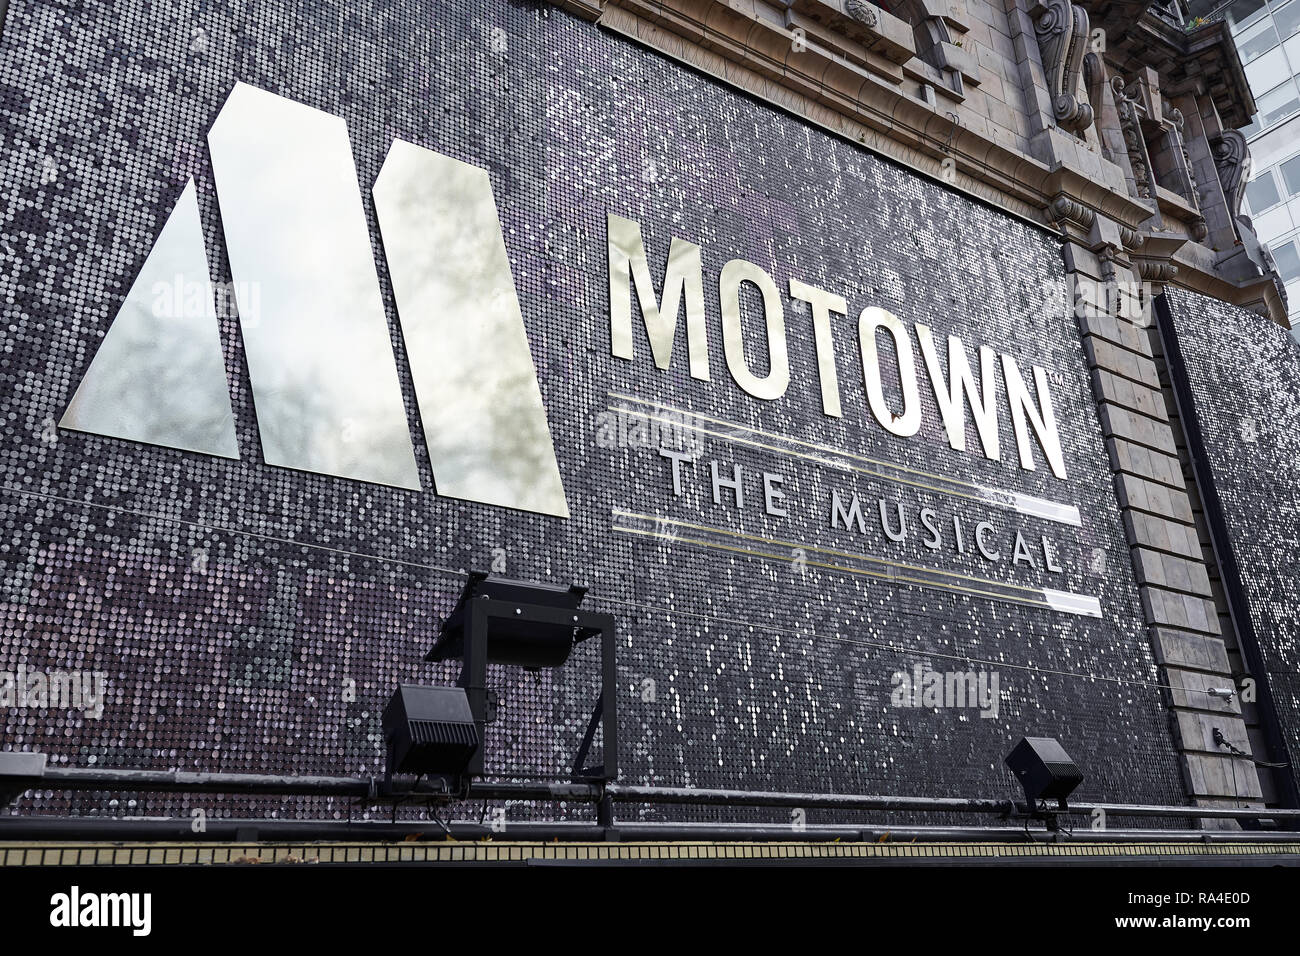 Motown The Musical show at the Shaftesbury theatre, London, England. - Stock Image